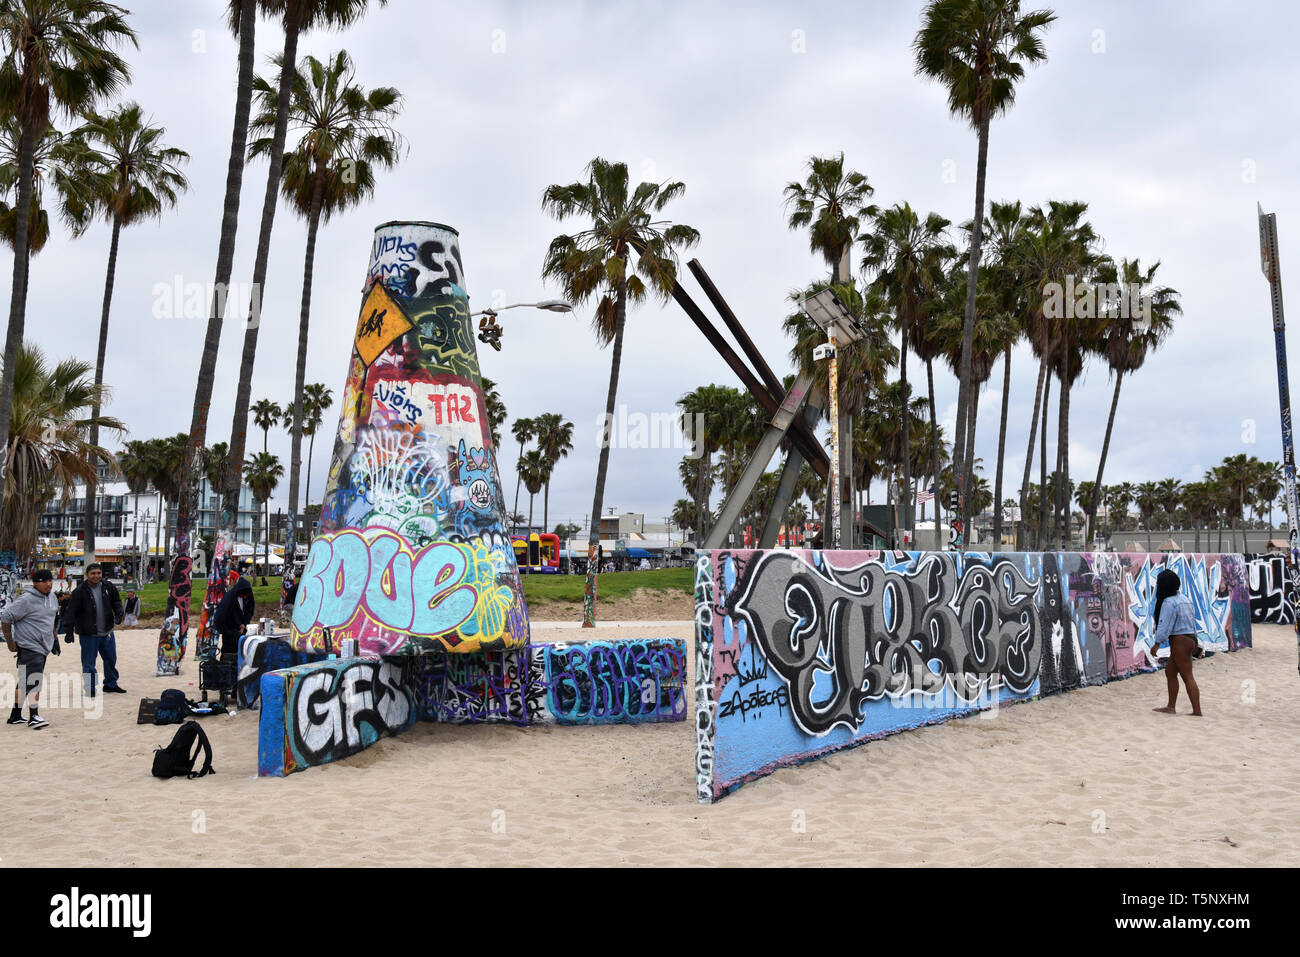 LOS ANGELES, CA/USA  - APRIL 19, 2019:  Tourists and taggers or graffiti artists at the Venice Beach Graffiti Walls - Stock Image